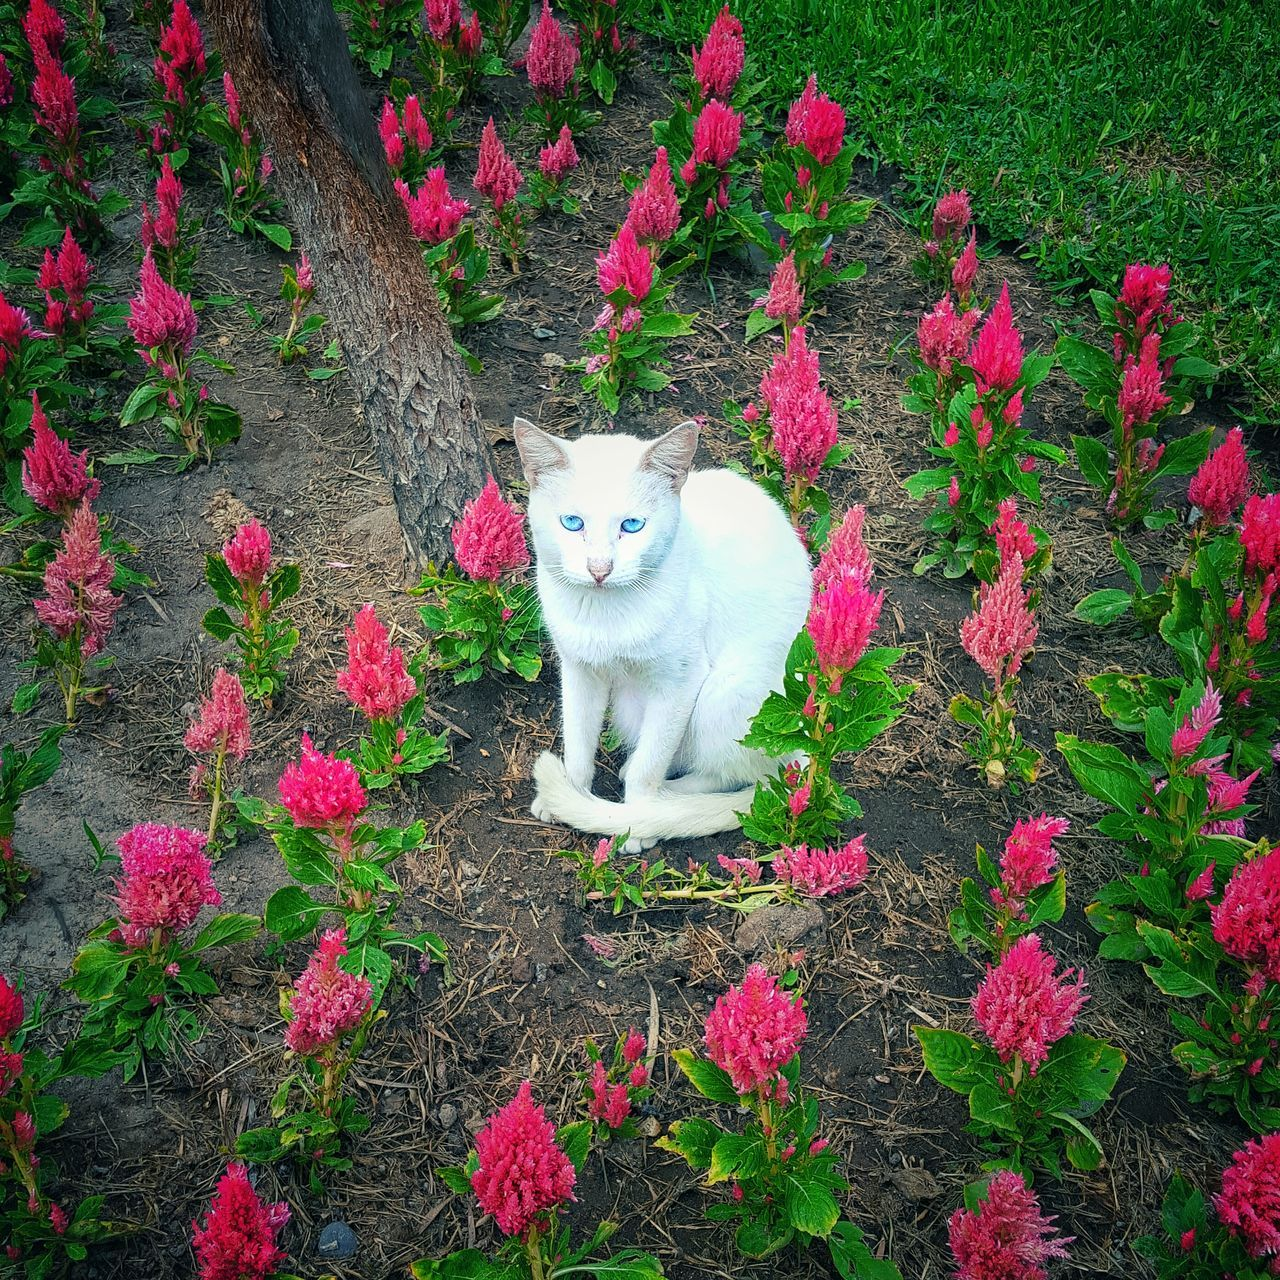 Cat White Cat Blue Eyes Pink Flowers Pink Parquekennedy Peru Peruvian Lima Miraflores Cats Cat♡ Cat Lovers Car